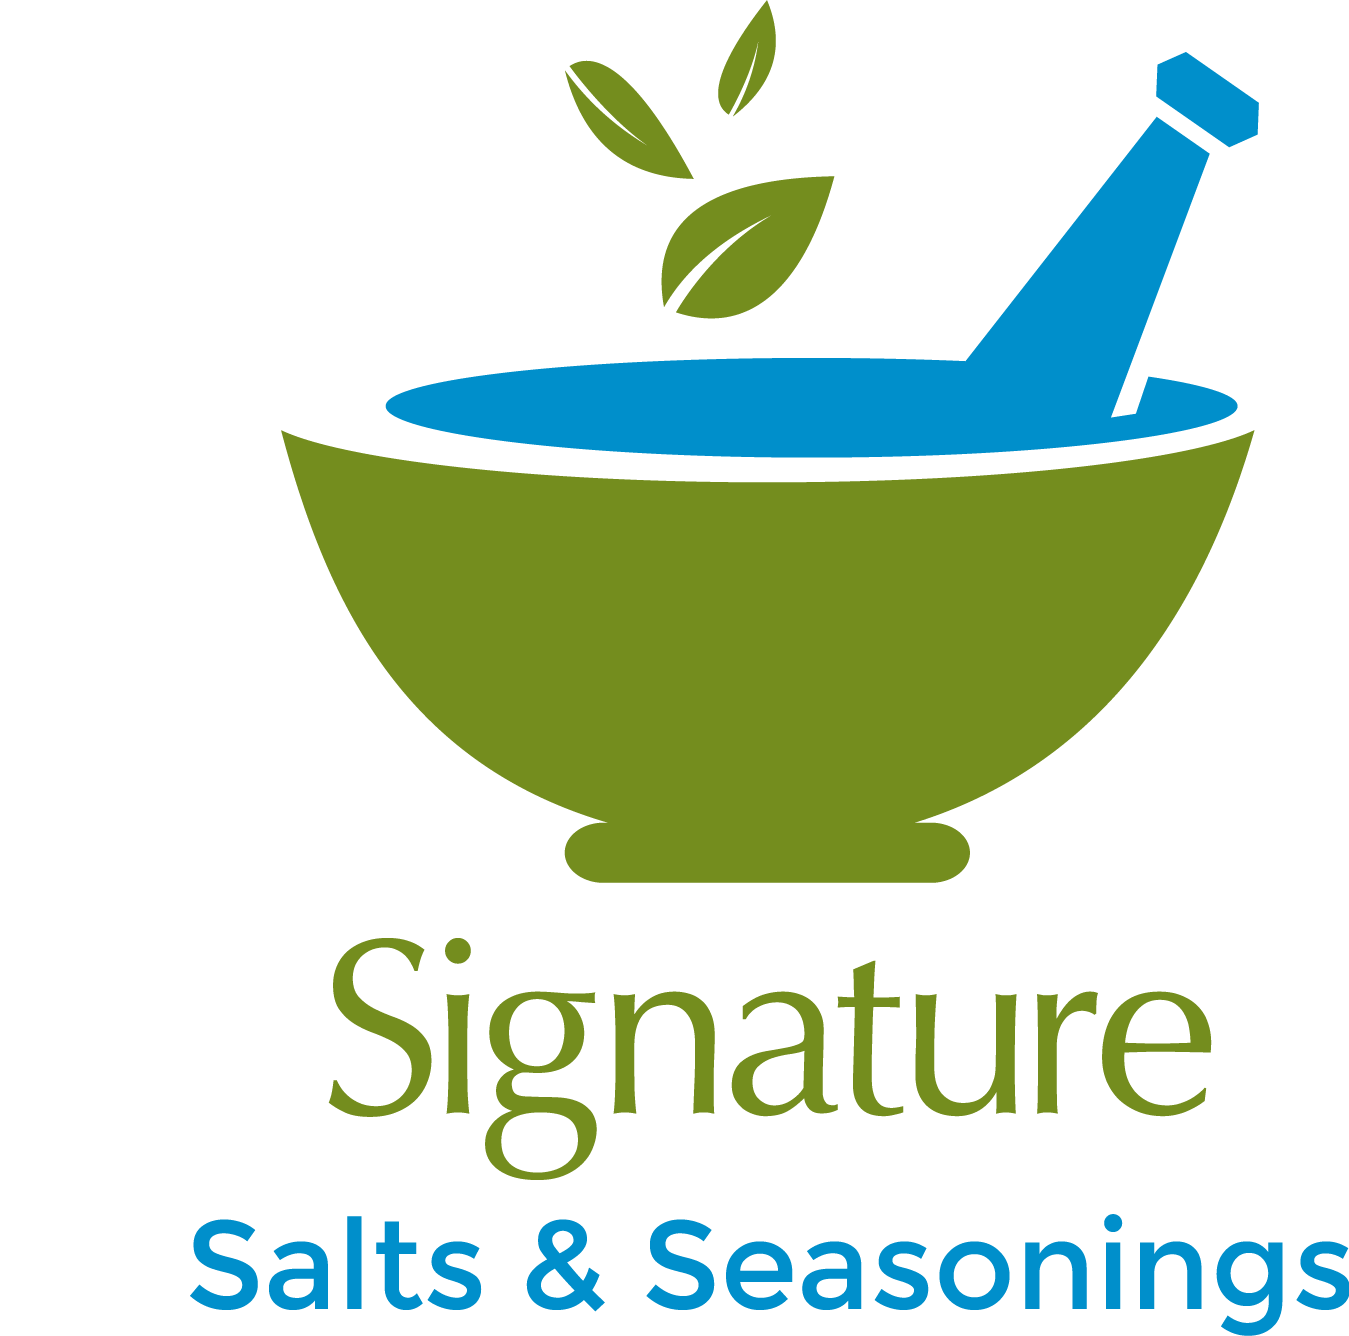 Signature Salts and Seasonings